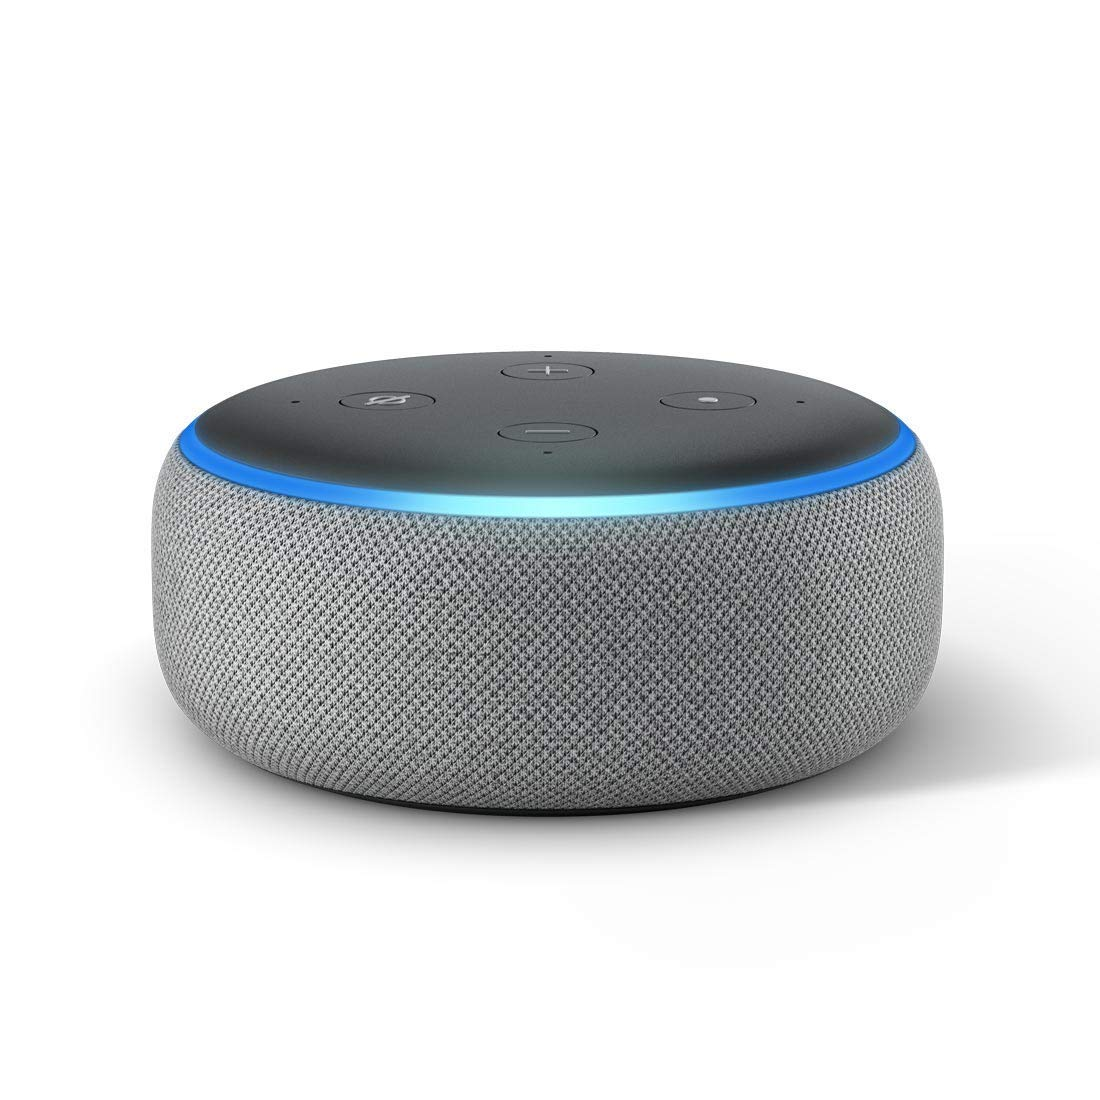 Amazon Smart Devices